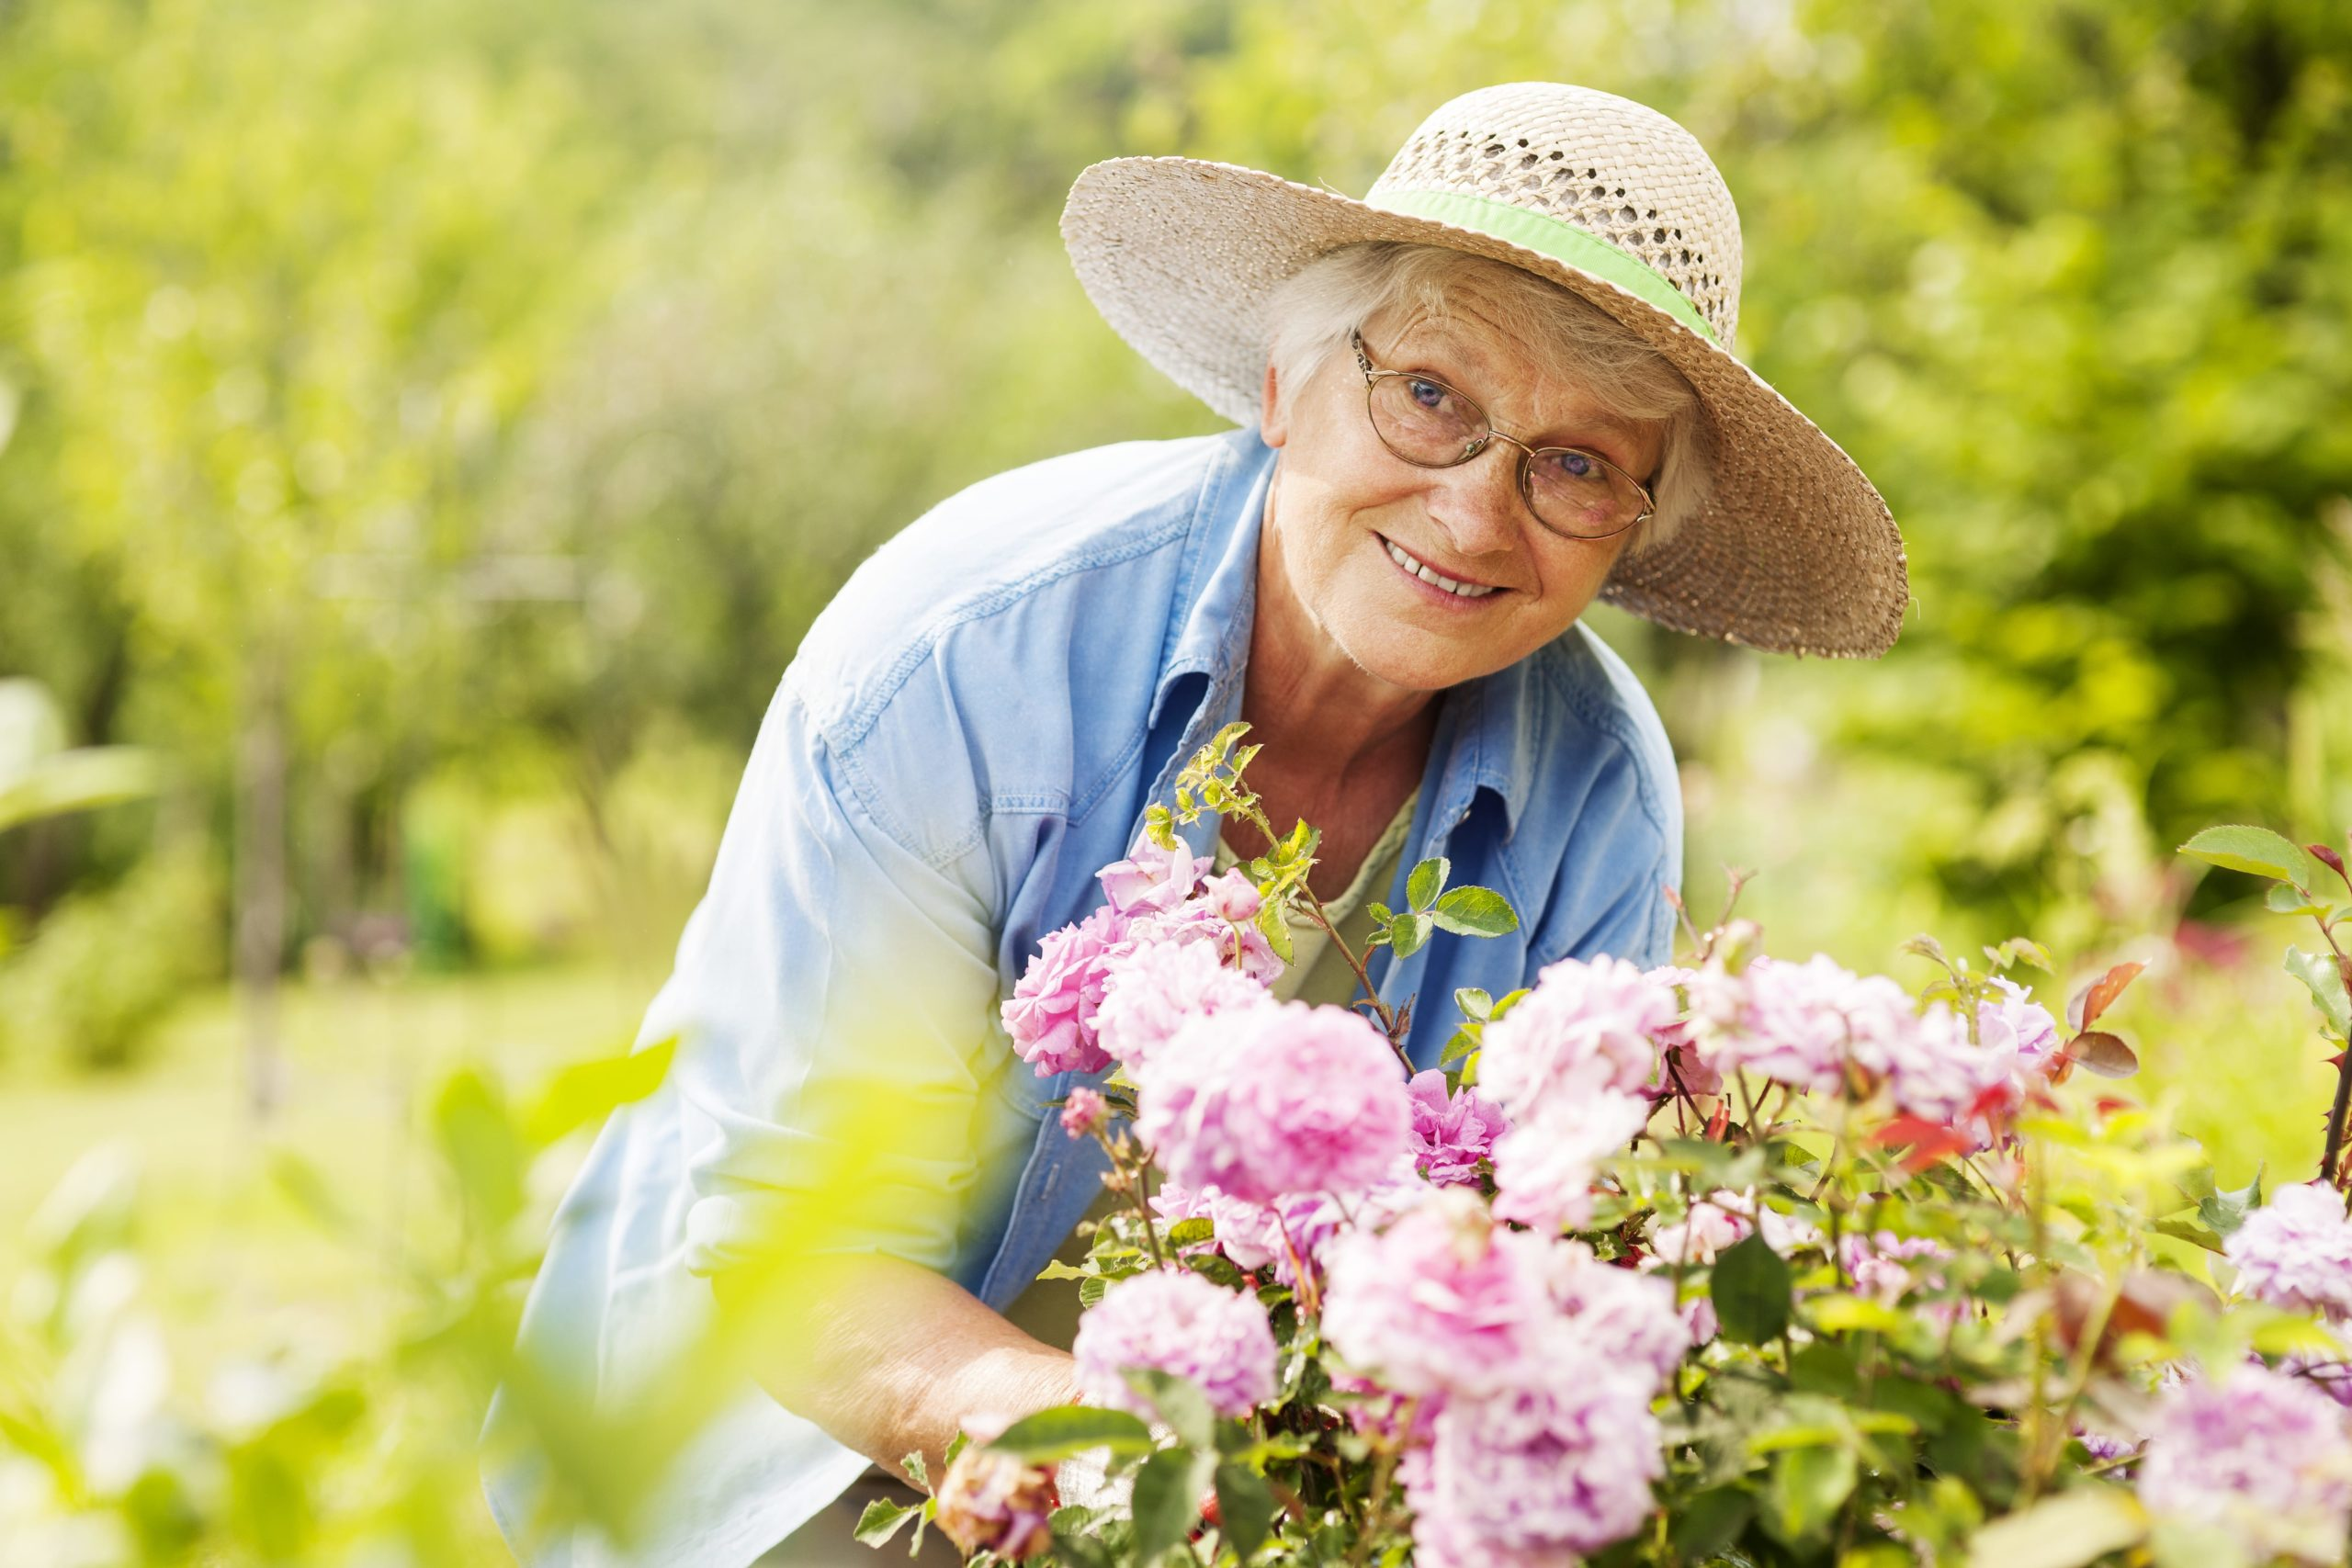 Dementia-Friendly Gardens: How Gardens Can Provide Wellbeing for Those With Dementia